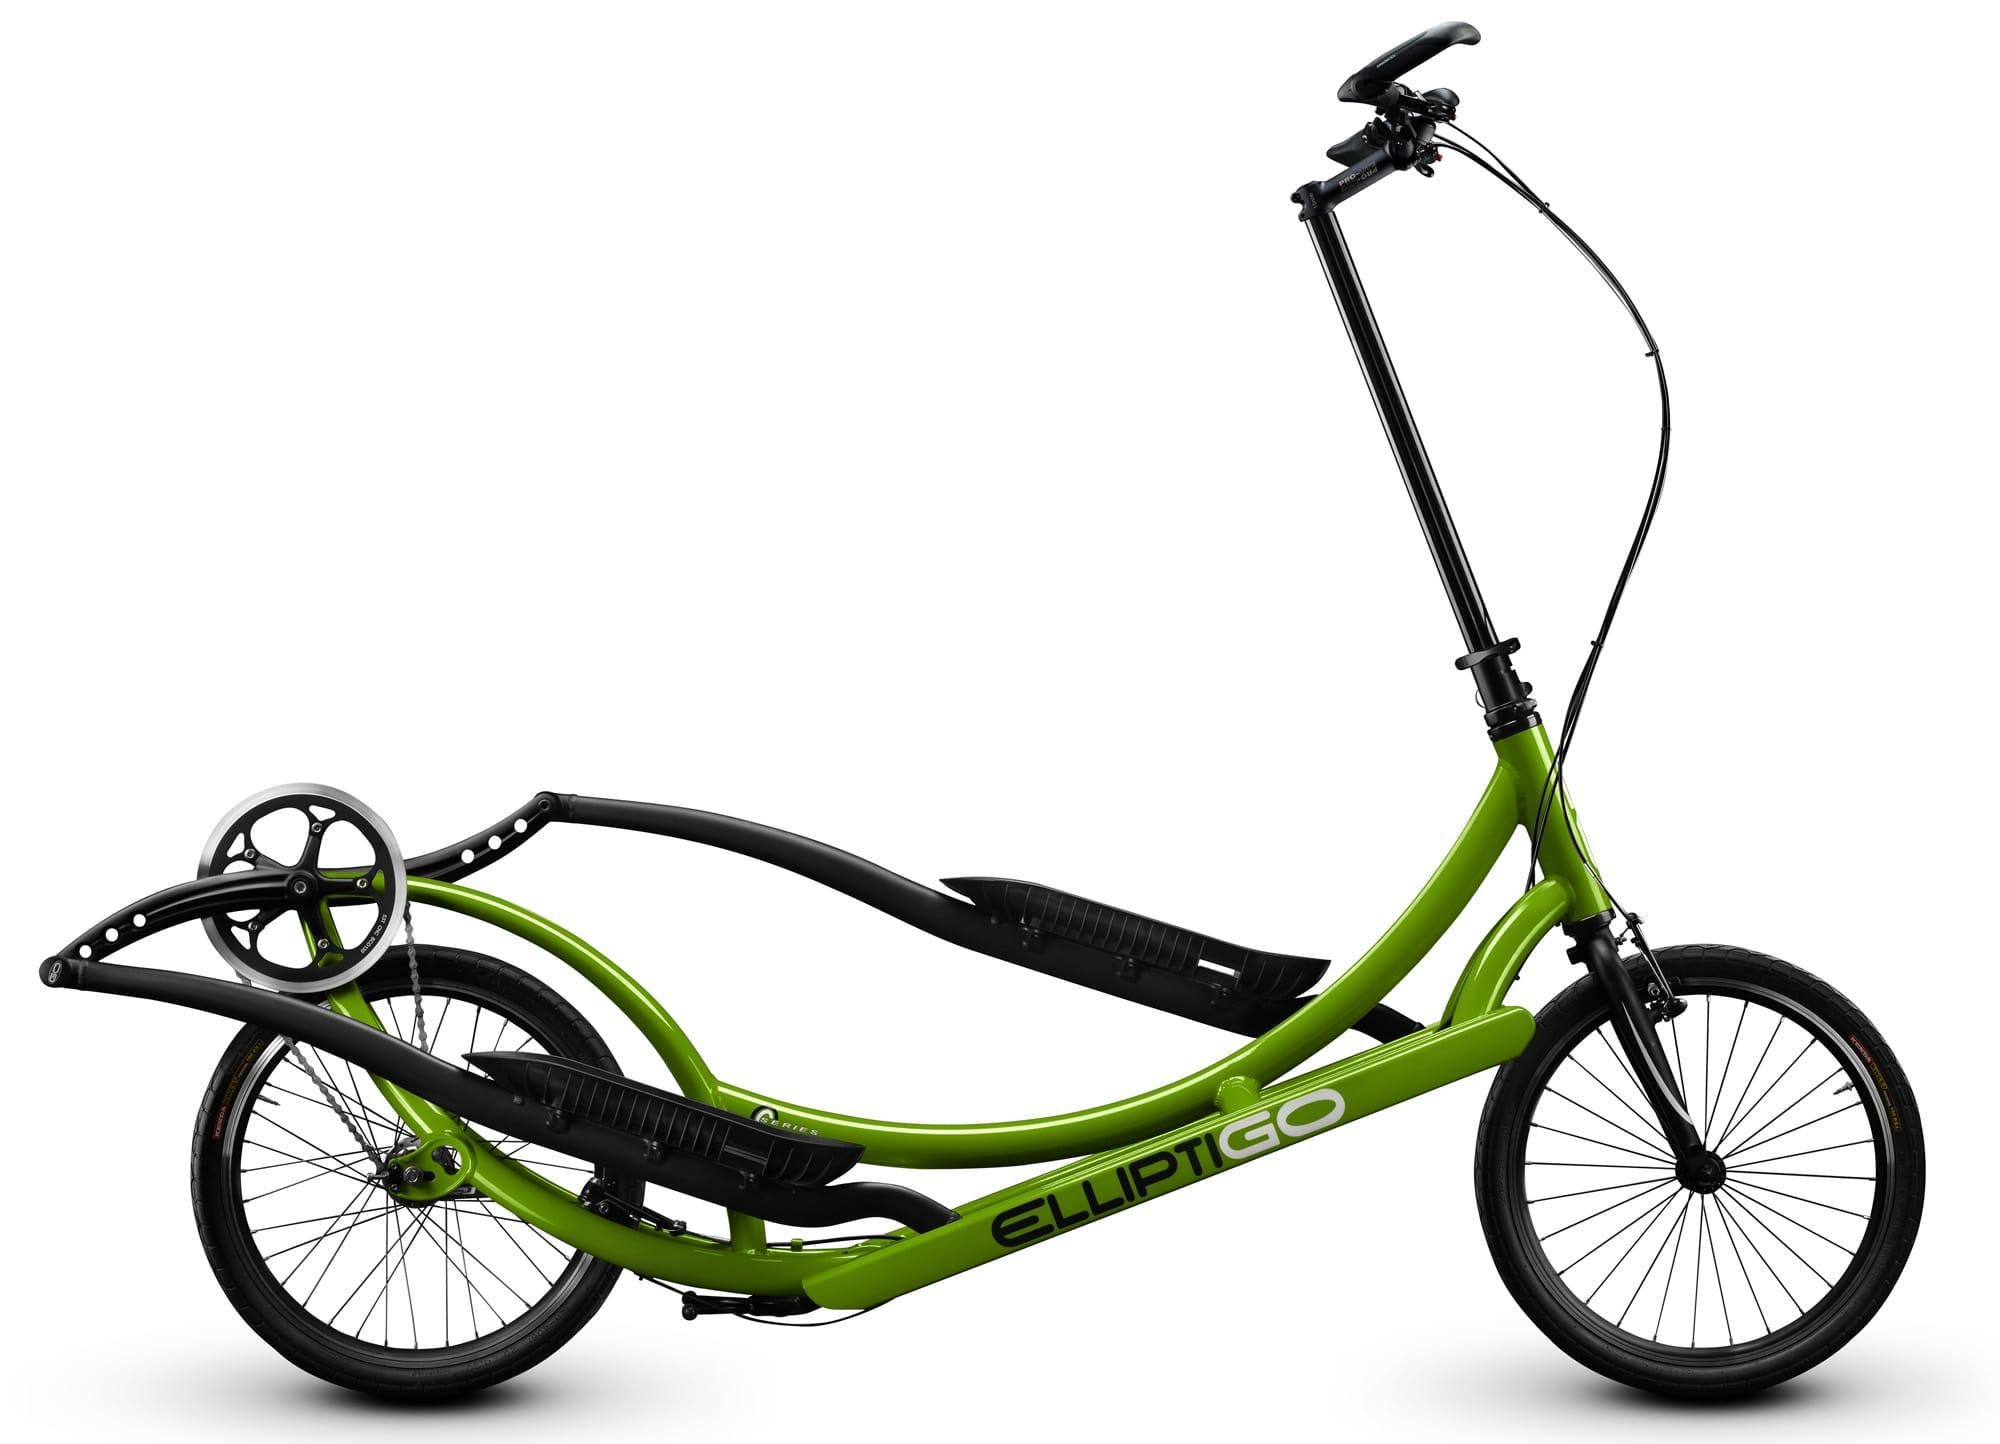 ElliptiGO Meb 8s in full black and green aluminum frame